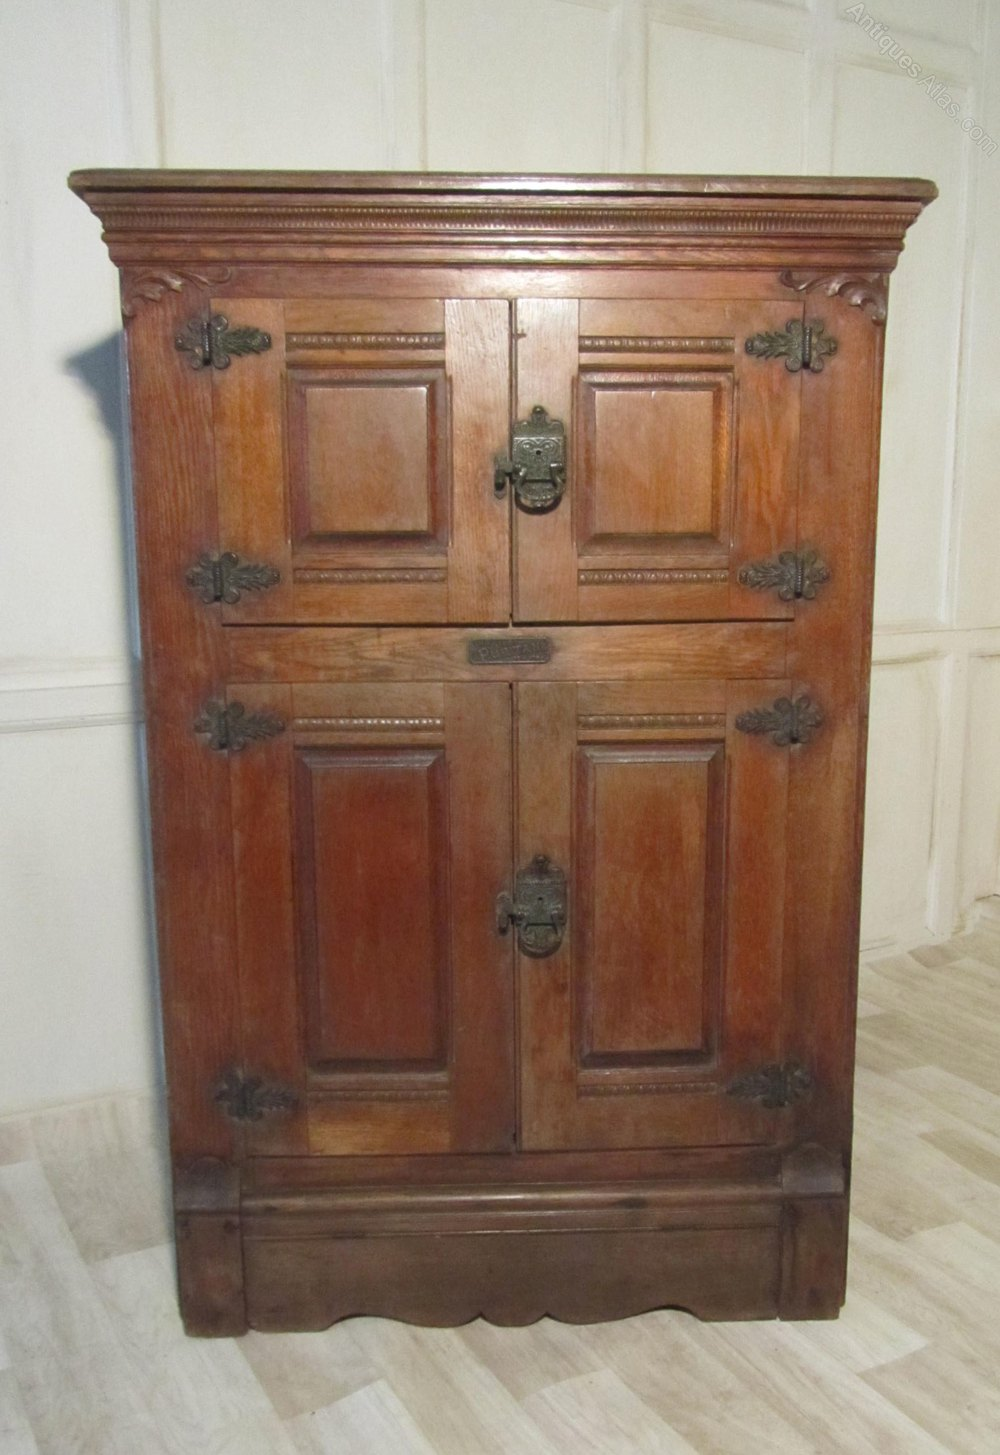 American Vintage Wooden Refrigerator Or Ice Box Antiques